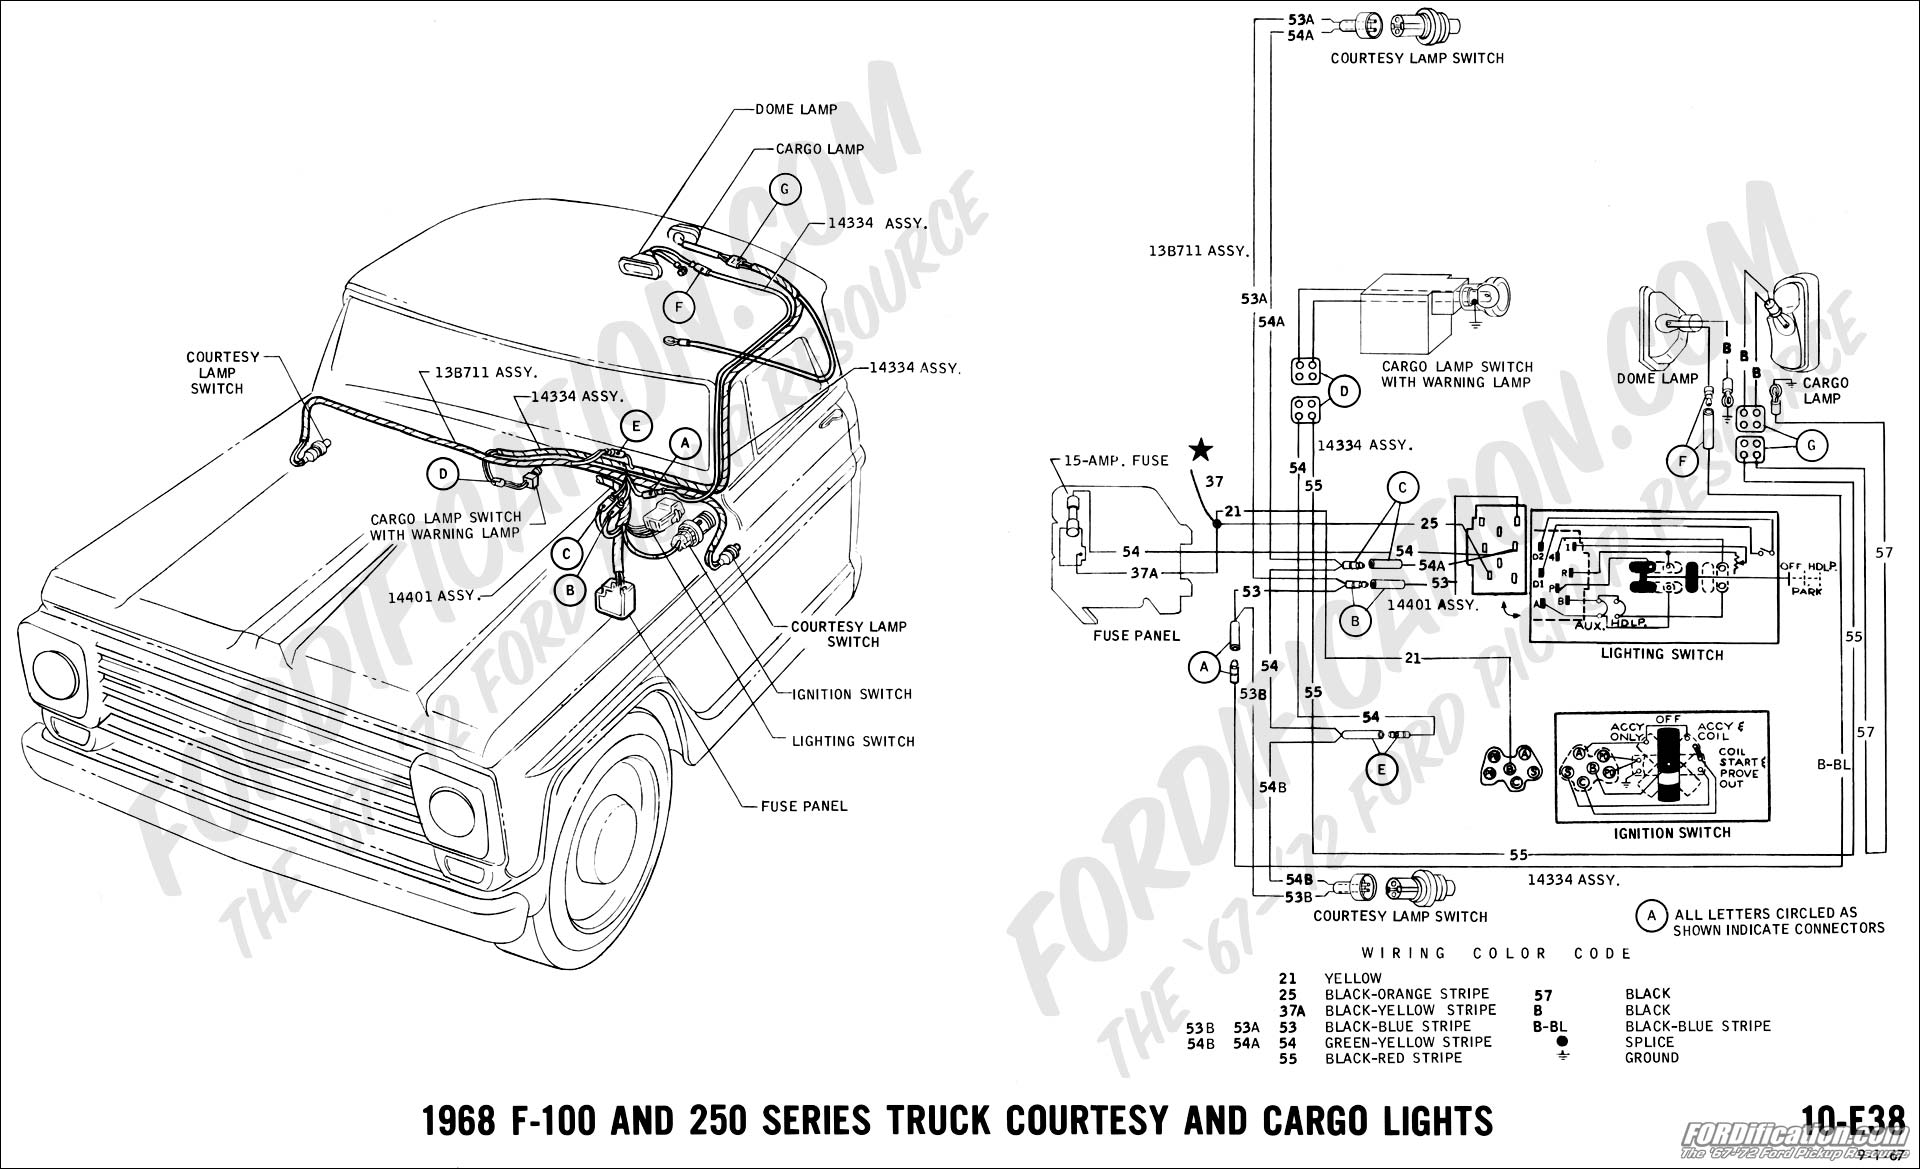 hight resolution of 1968 f 100 and f 250 courtesy and cargo lights